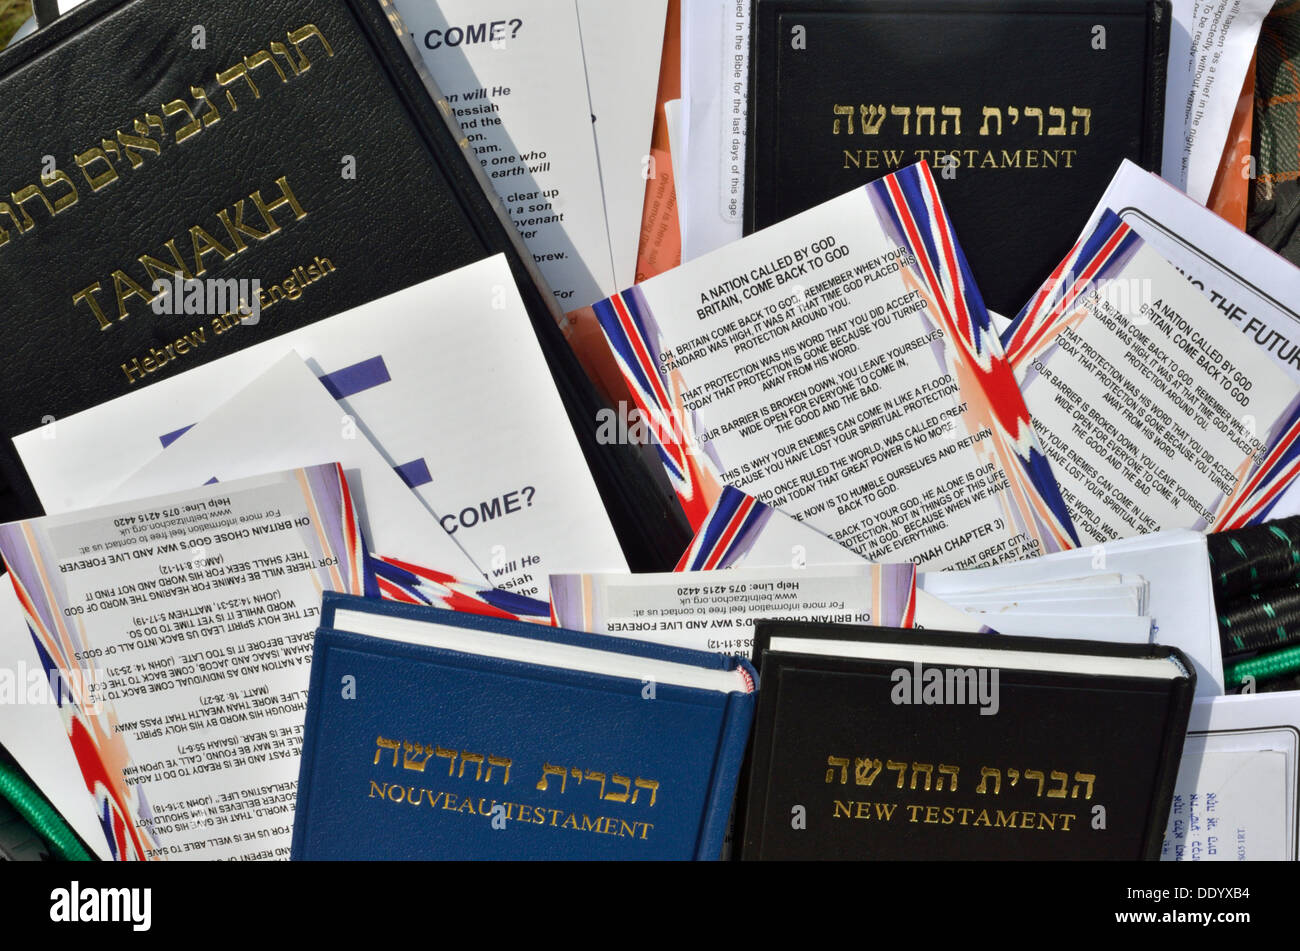 Copies of the New Testament aimed at converting Jews to Christianity - Stock Image